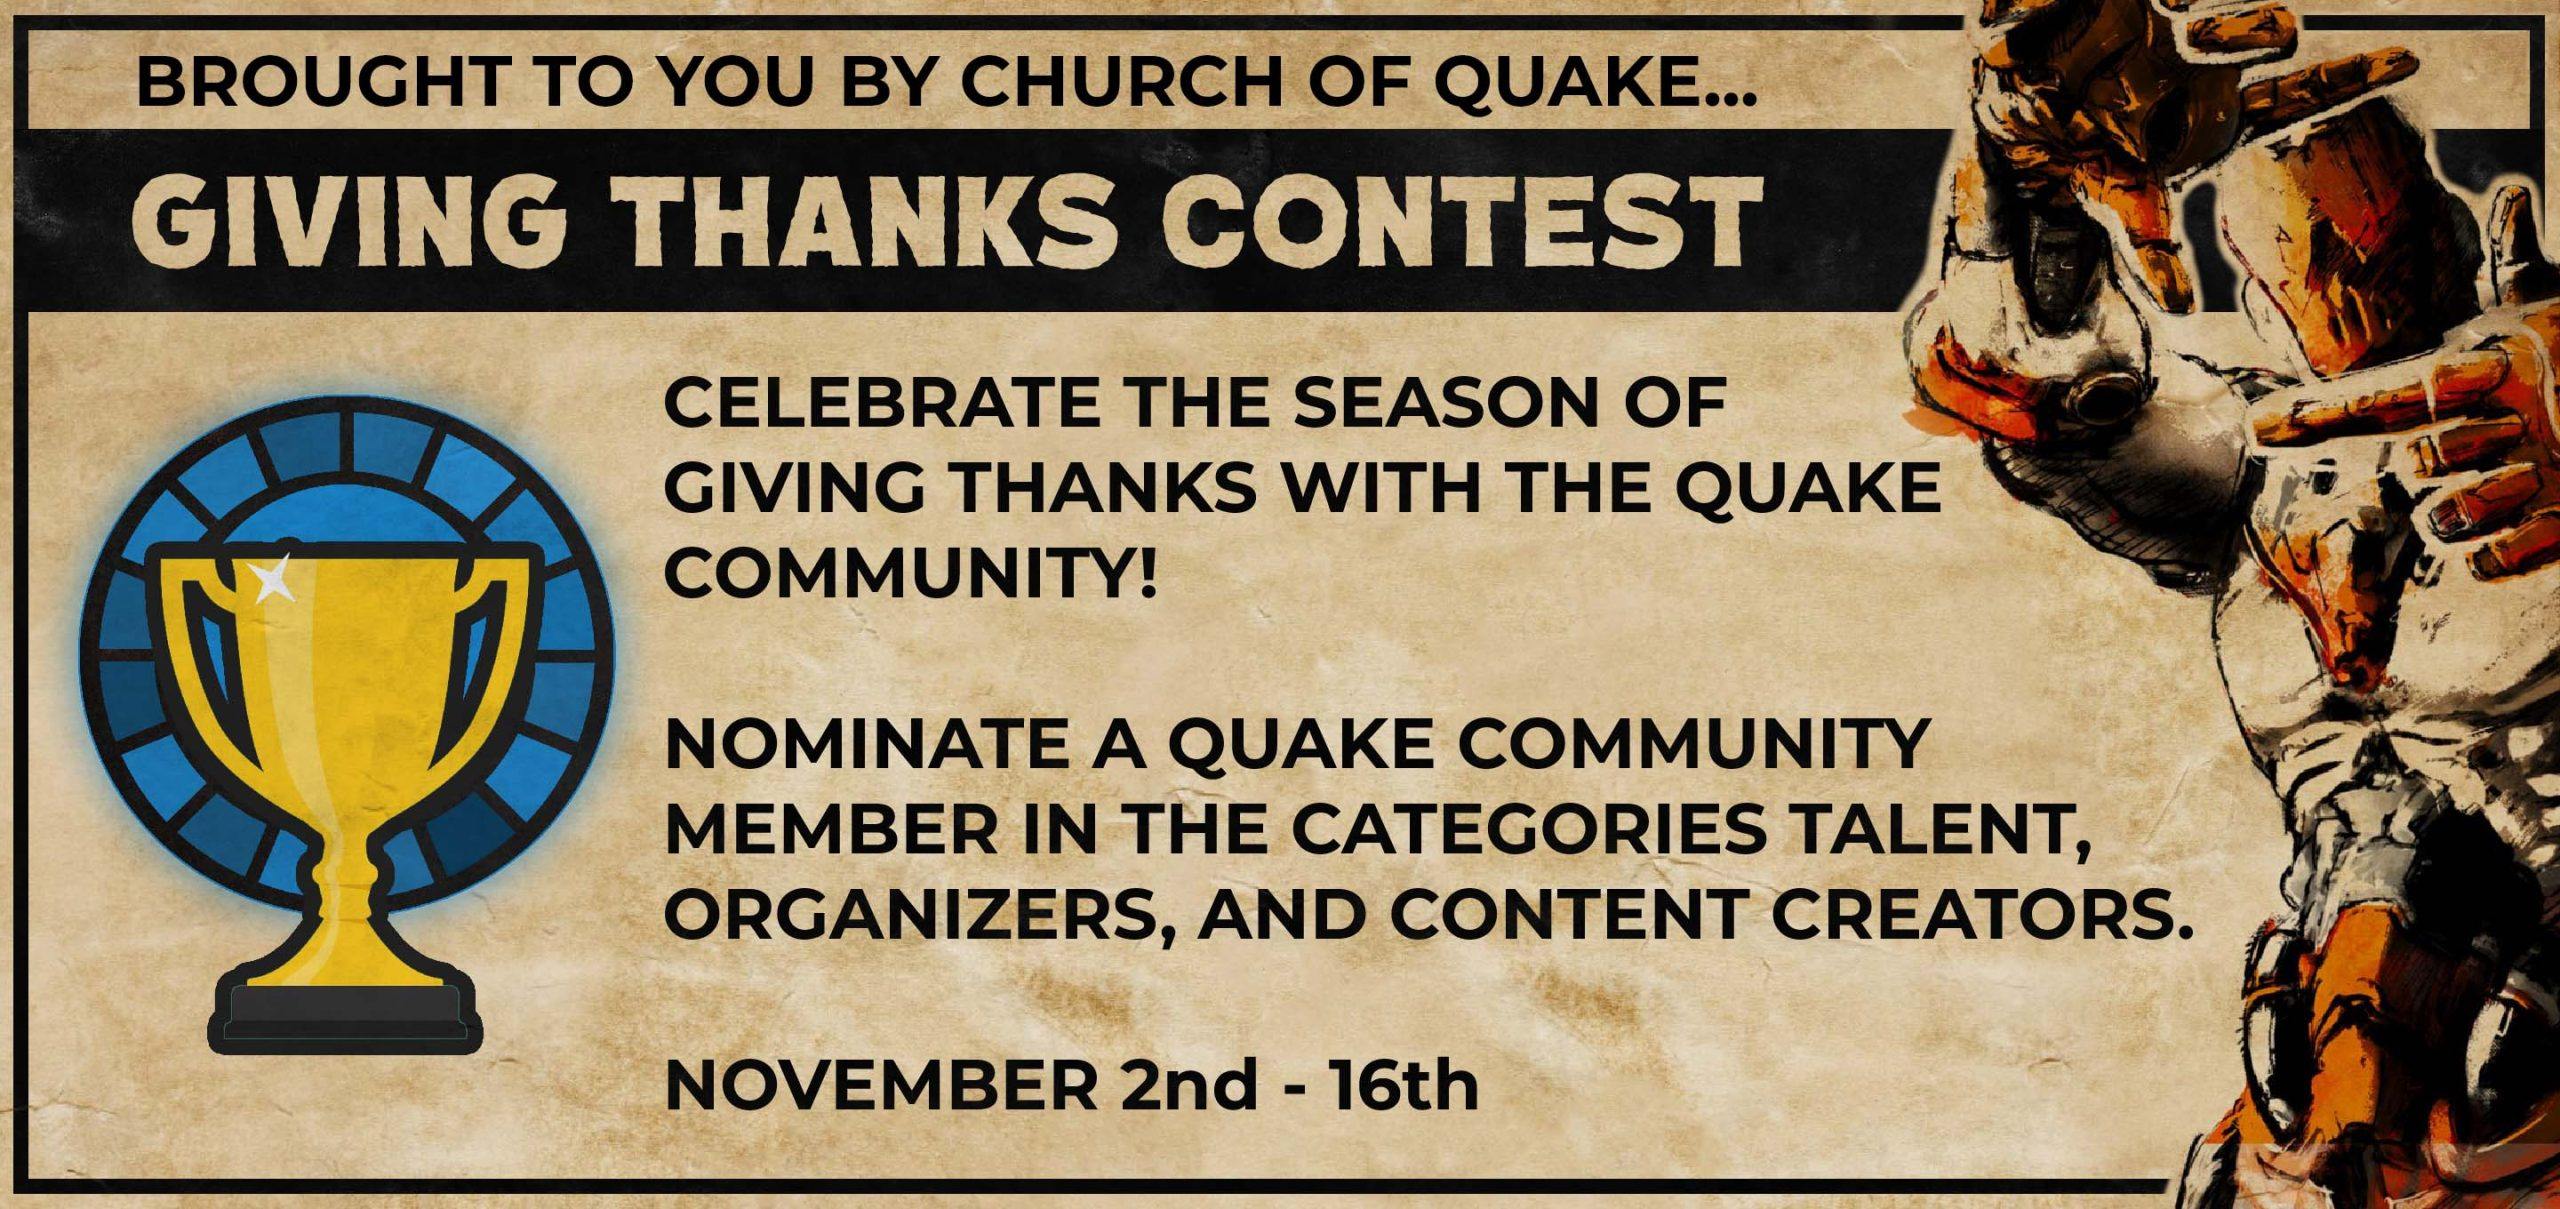 Giving Thanks Contest